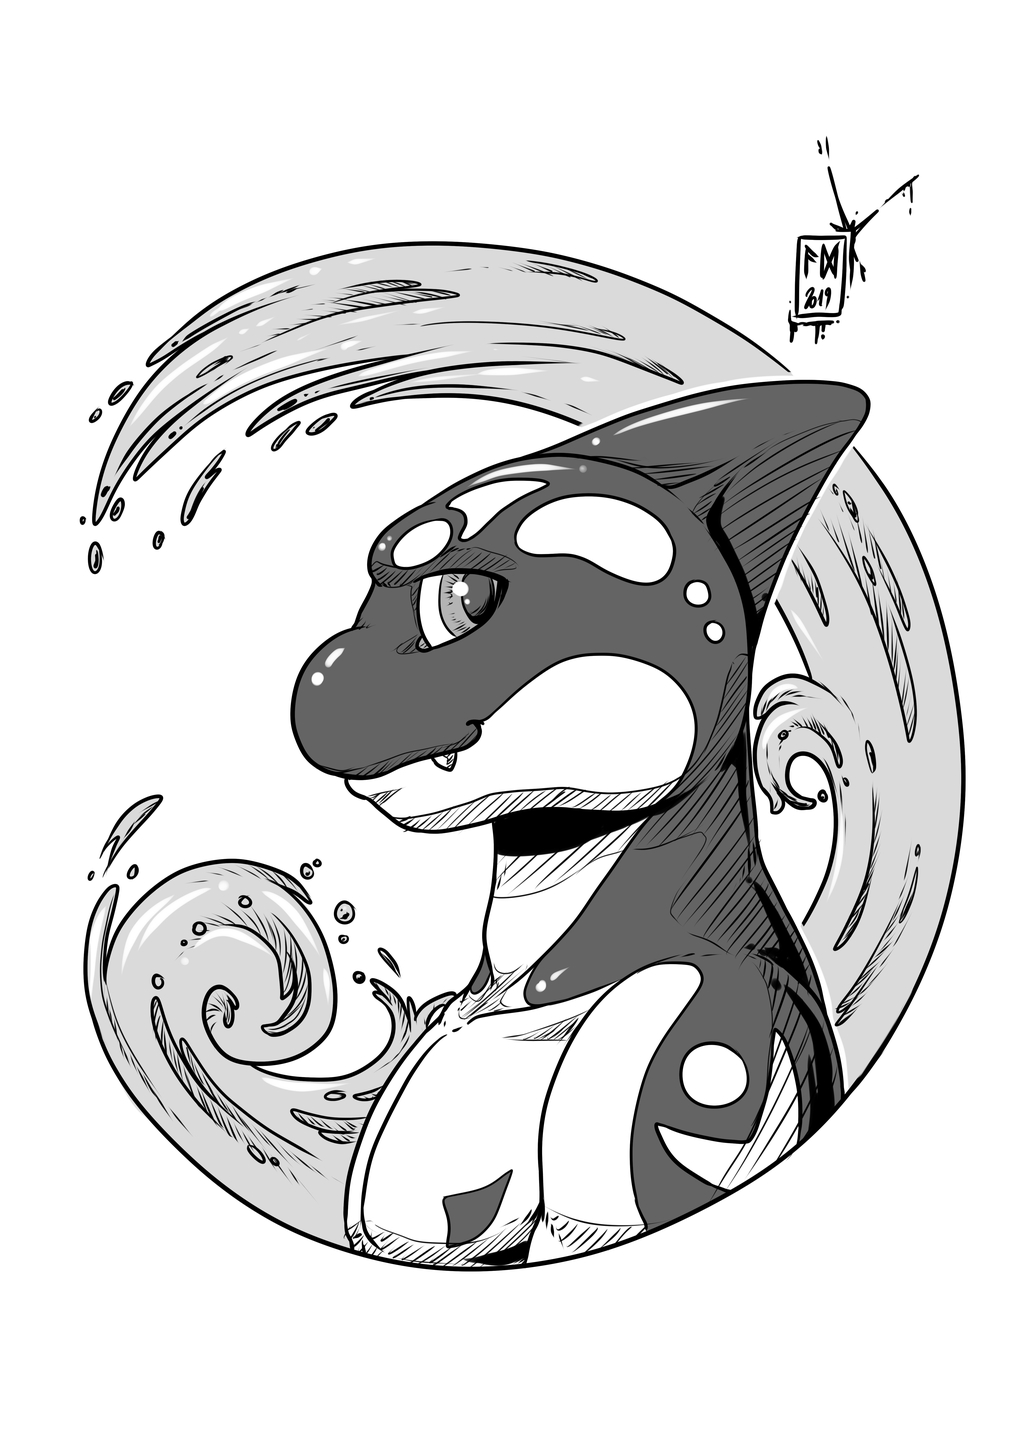 Ink-Profile N°50:Cise the Orca